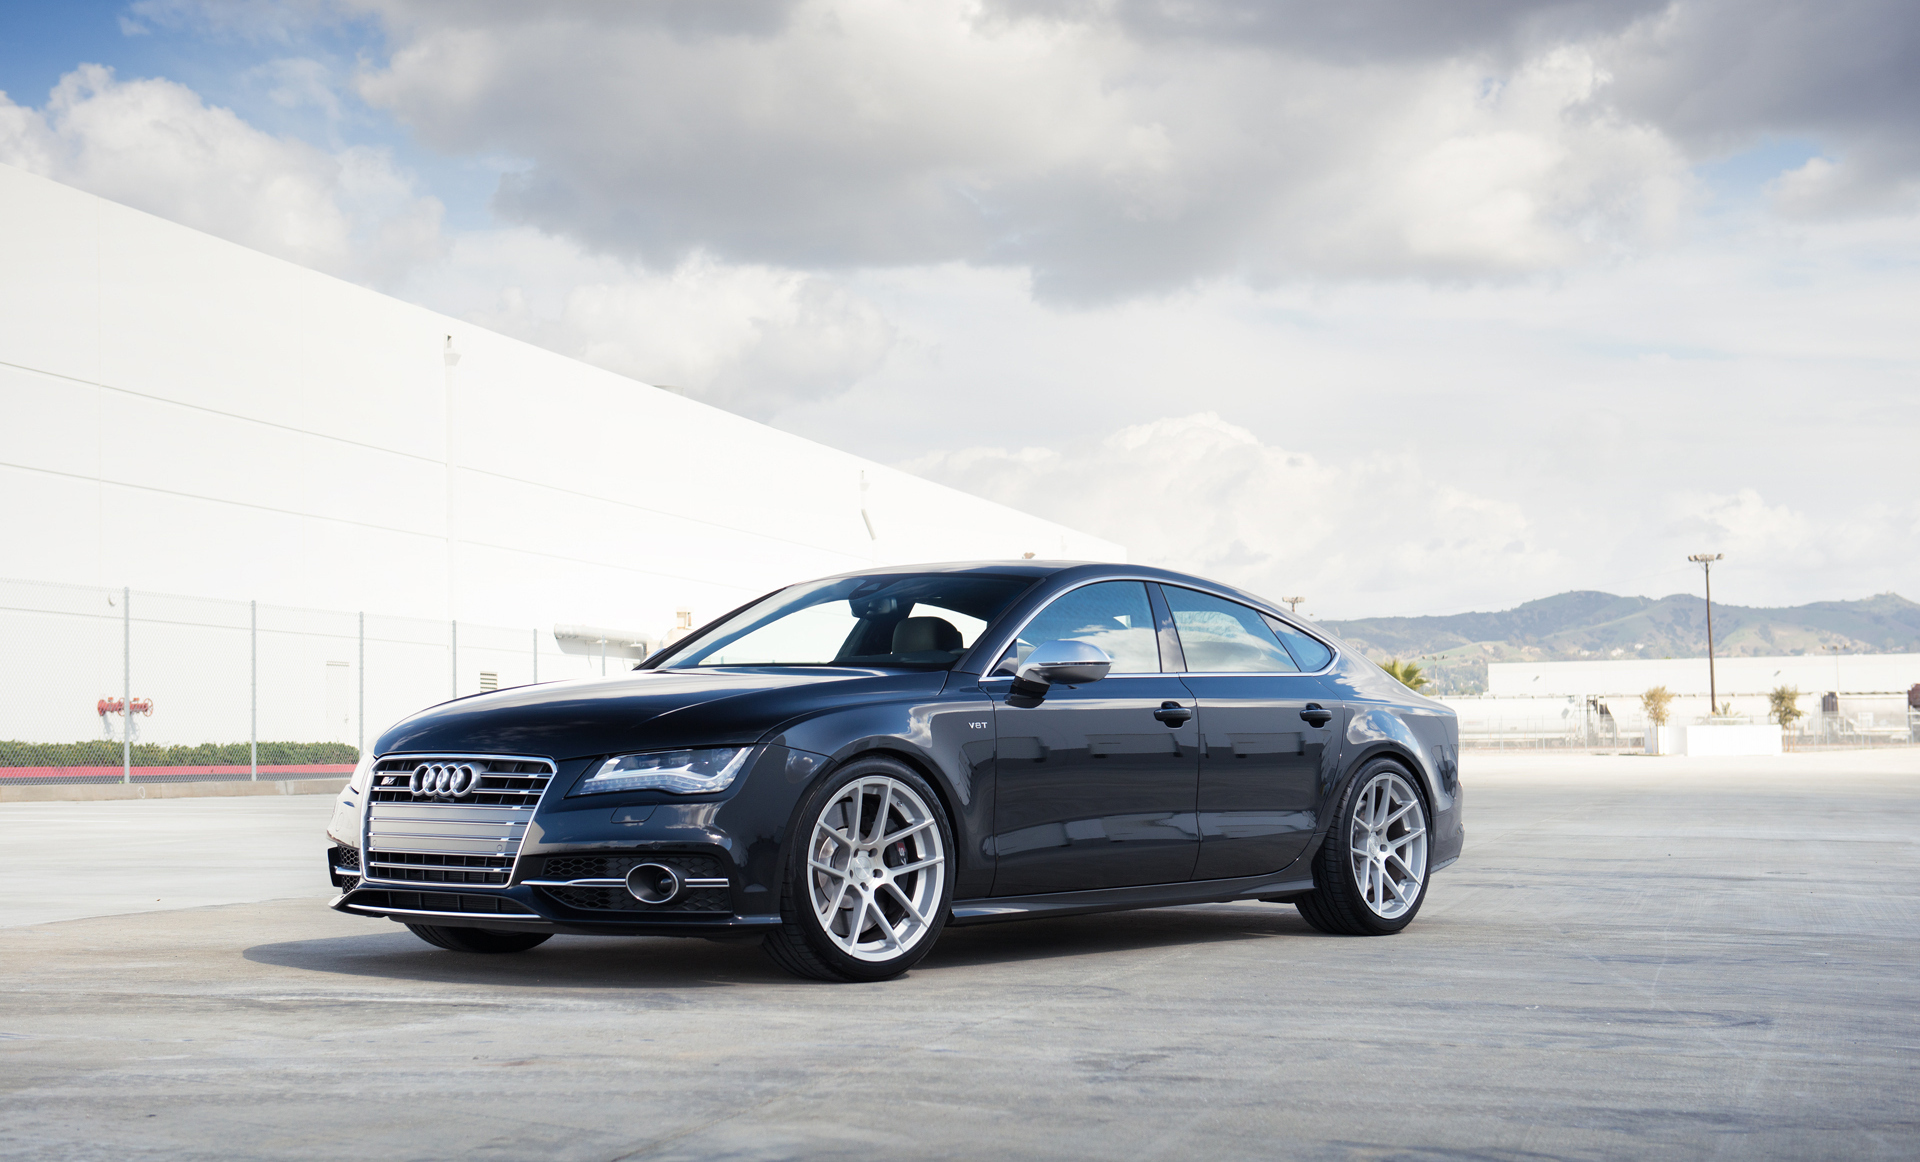 Wallpapers audi a7 s7 black audi   car pictures and photos audi 1680x1050